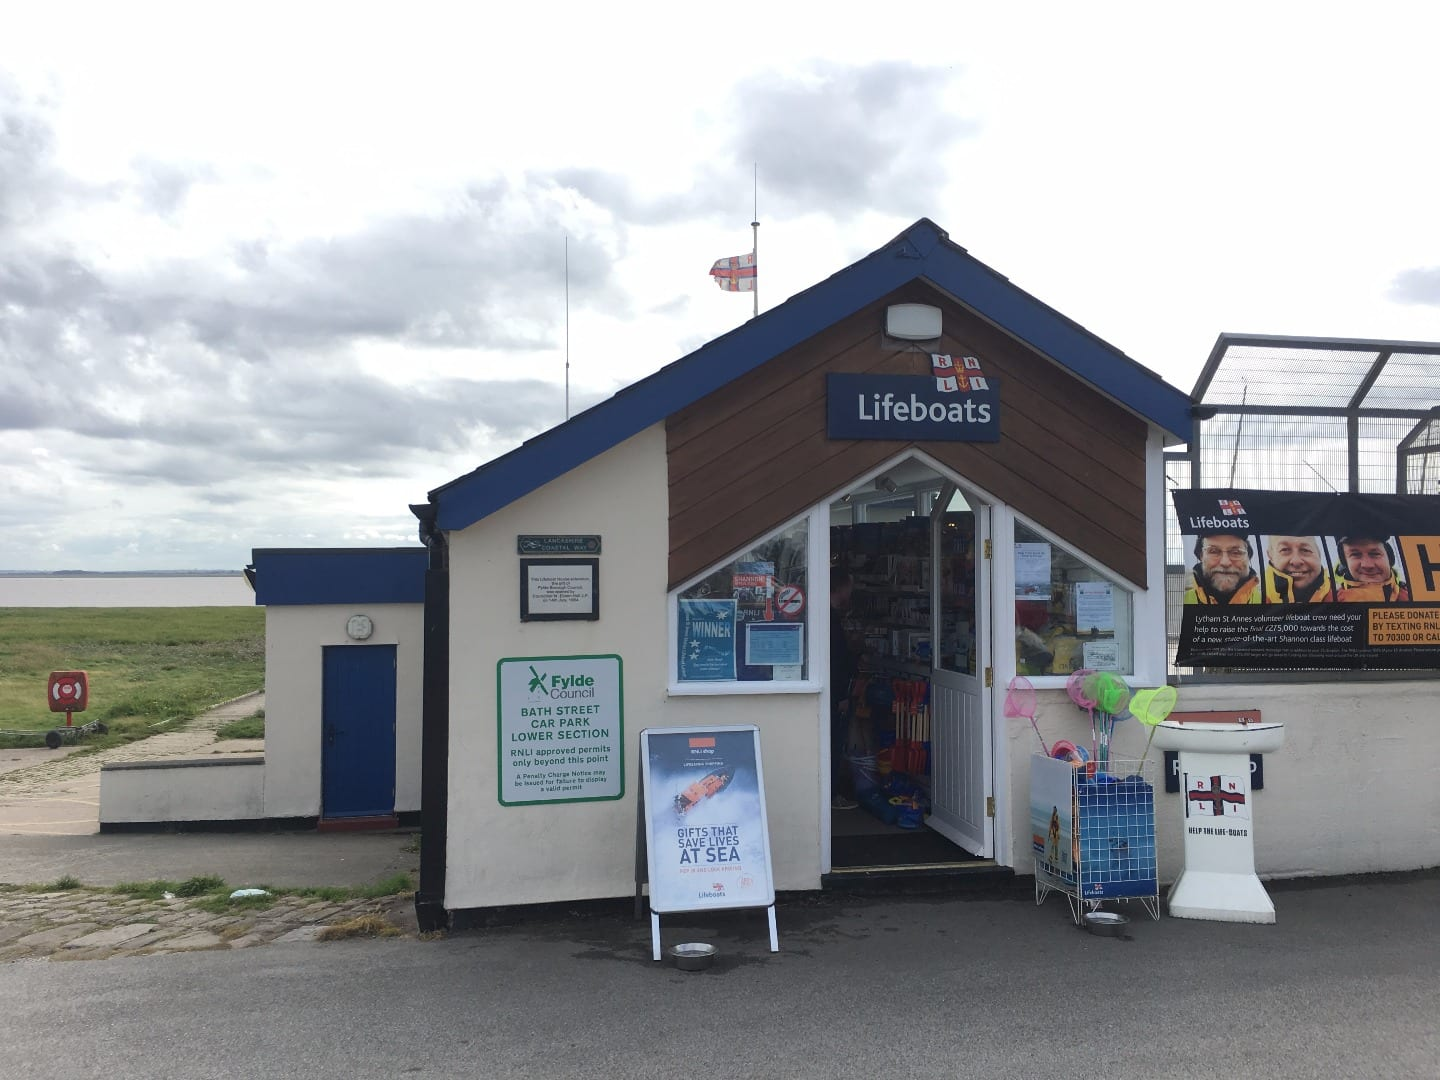 RNLI lifeboat station at Lytham seafront